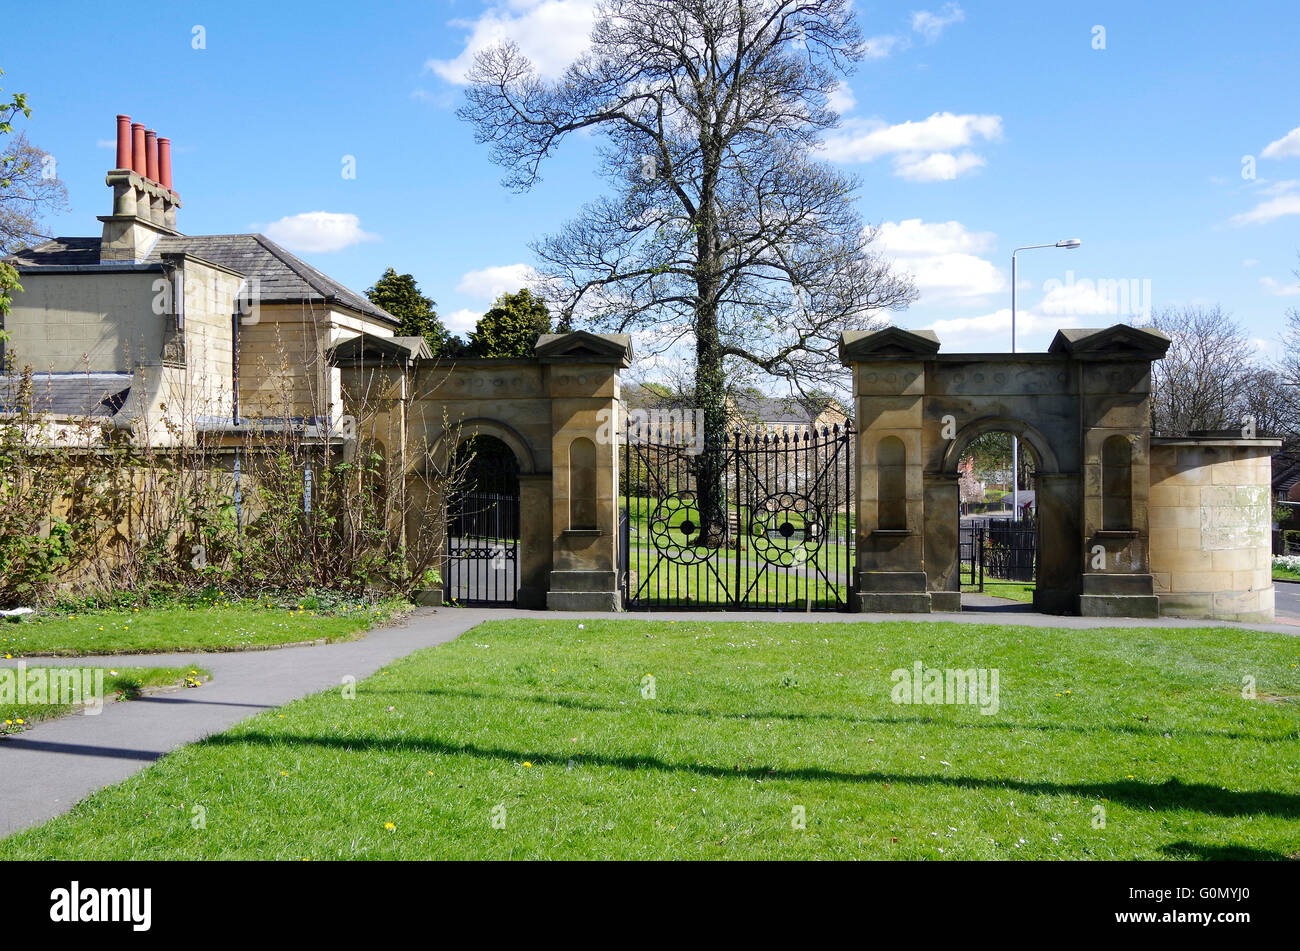 Gate house of Gledhow Grove, Greek Revival Mansion - Stock Image